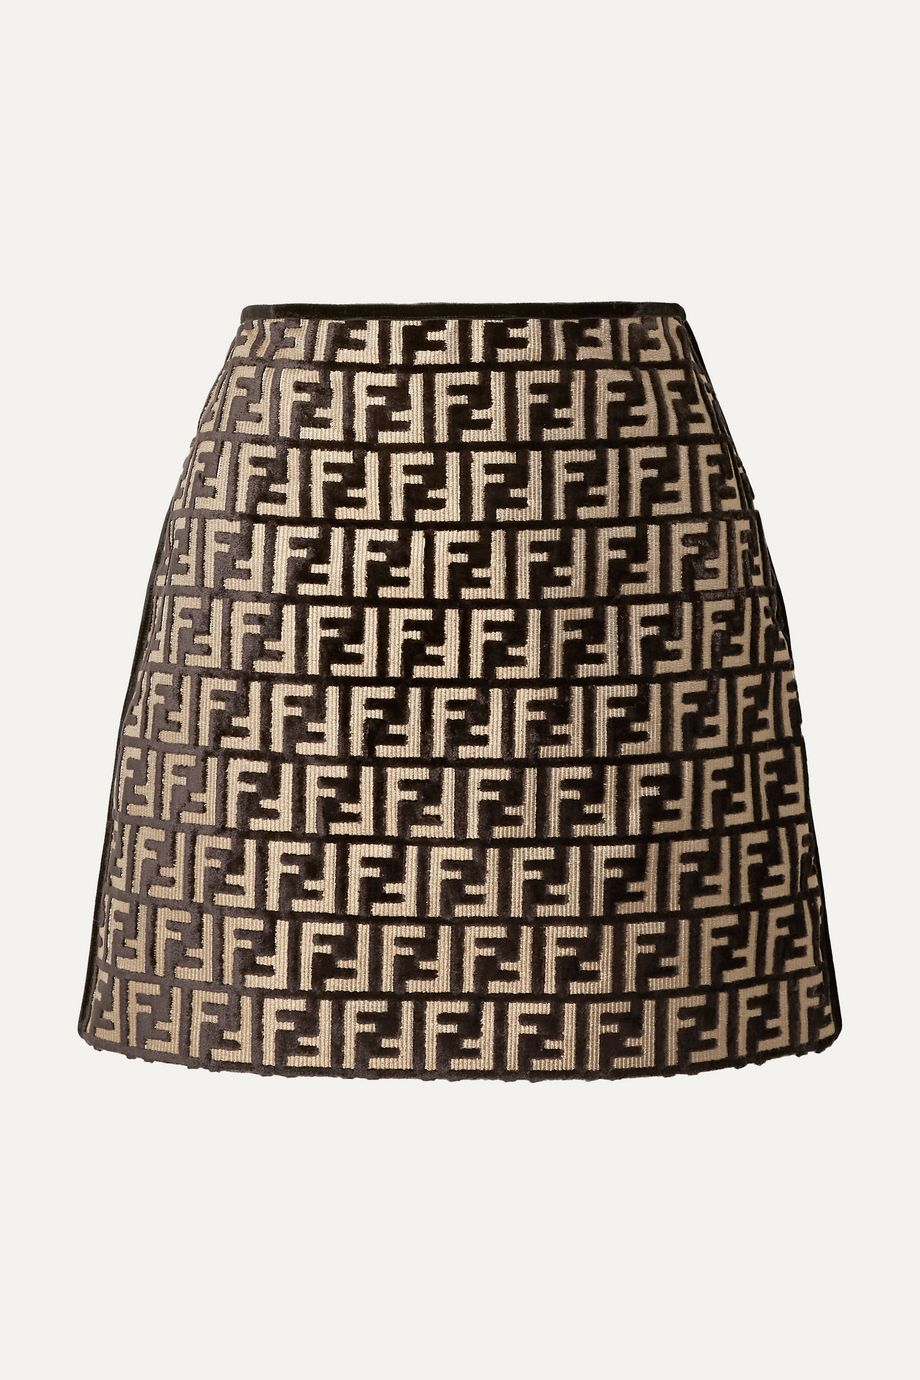 Fendi Flocked woven mini skirt